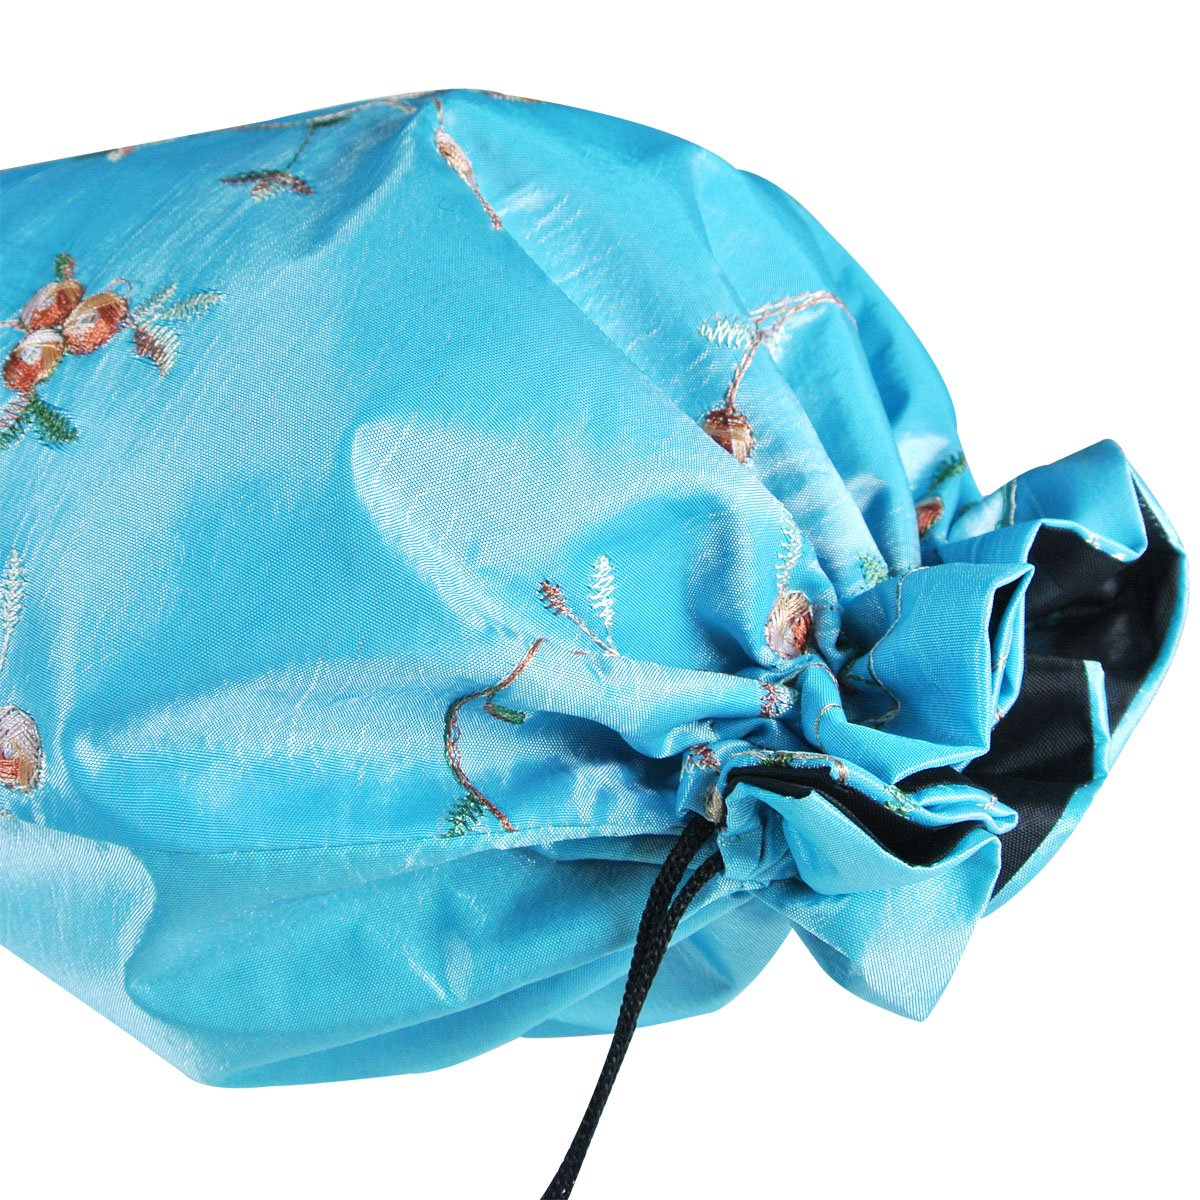 Wrapables Beautiful Embroidered Silk Travel Bag for Lingerie and Shoes, Sky Blue by Wrapables (Image #2)